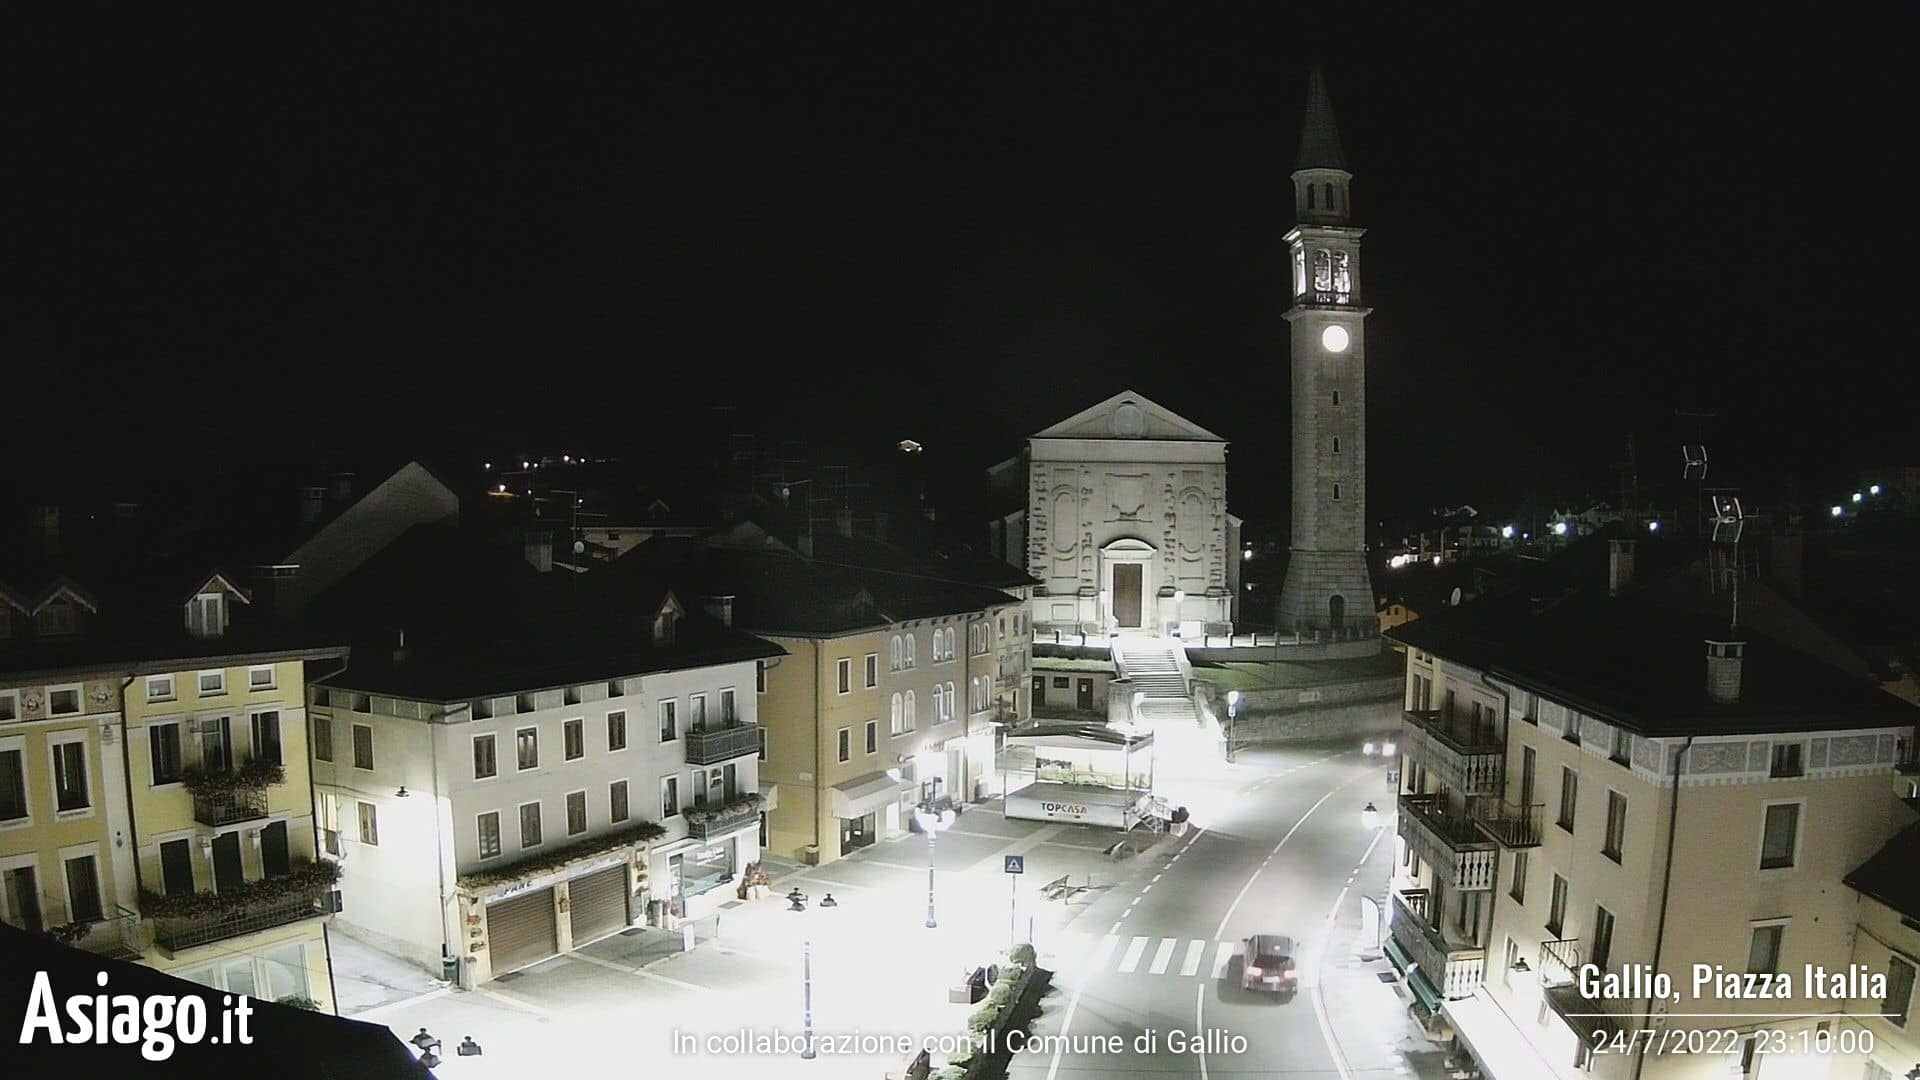 Webcam live di Asiago.It sulla piazza di Gallio